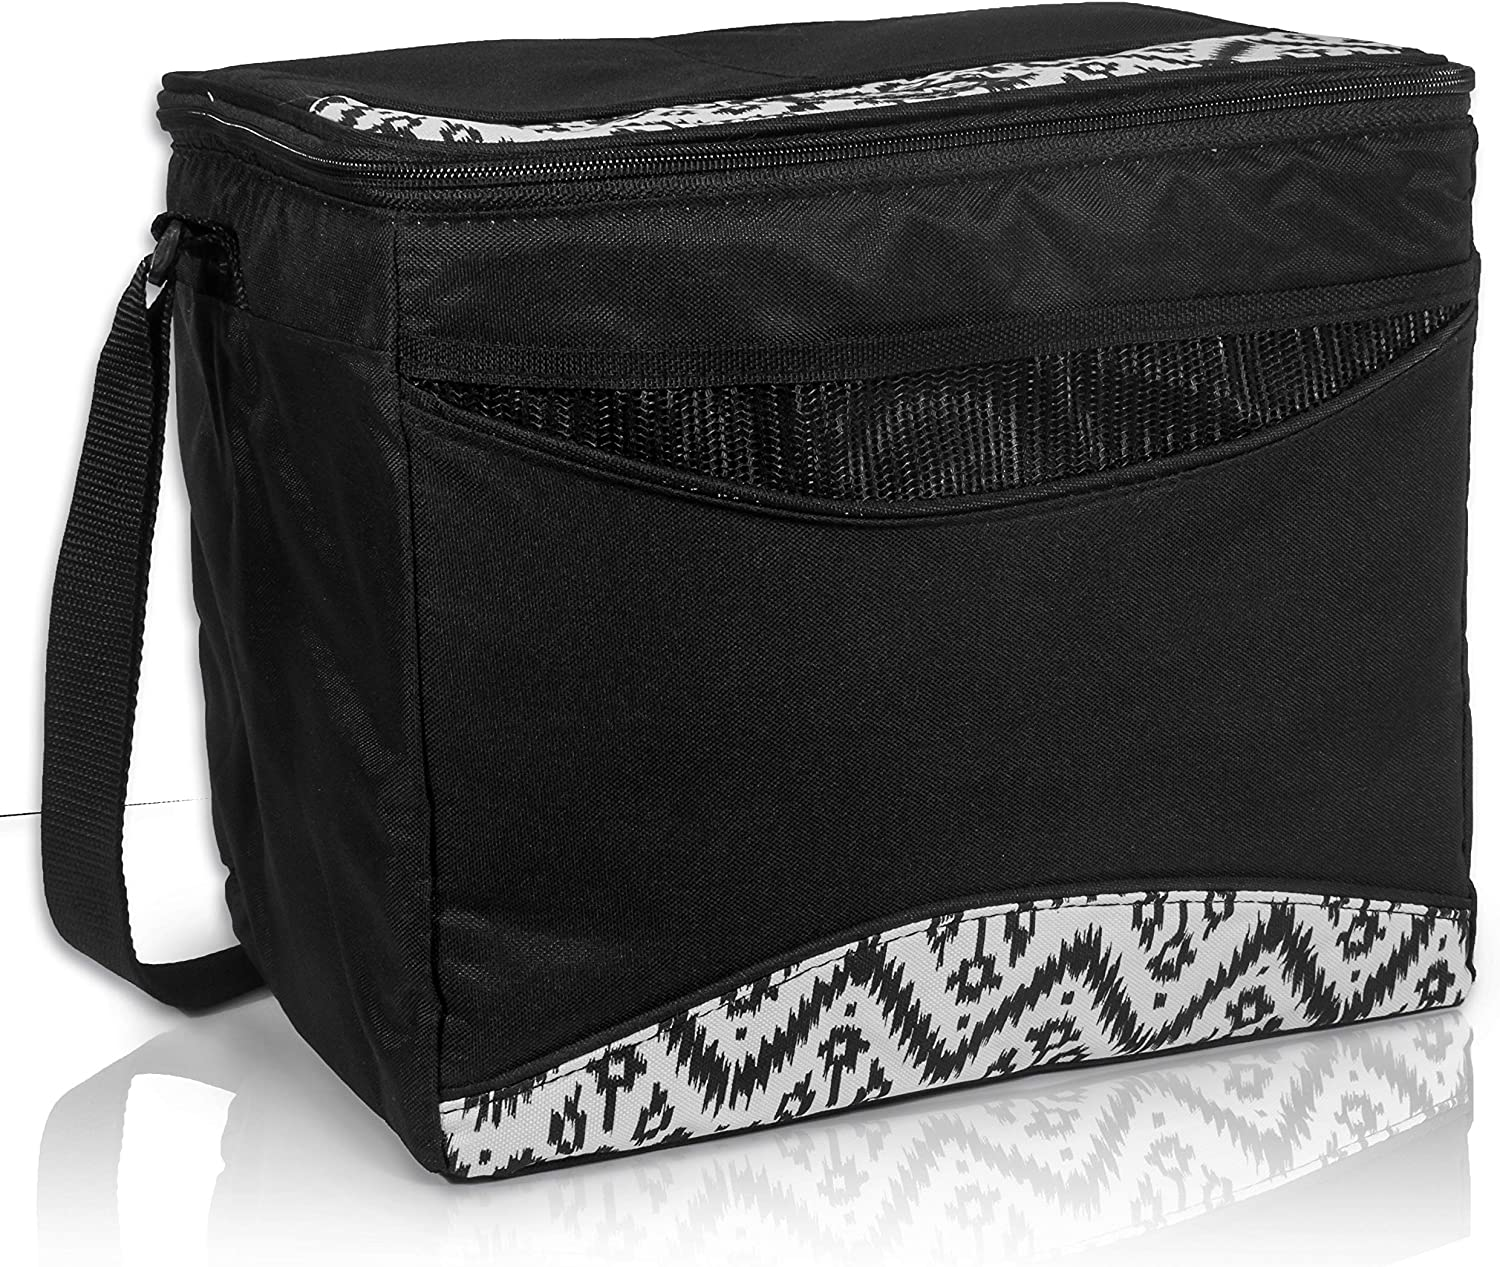 RMS Outdoors Cooler and Lunch Bag - Insulated Lunch Box for Everyday Activities - Ideal for Camping, Outdoor and Games - Fully Foldable & Collapsible for Easy Storage (12 Can)